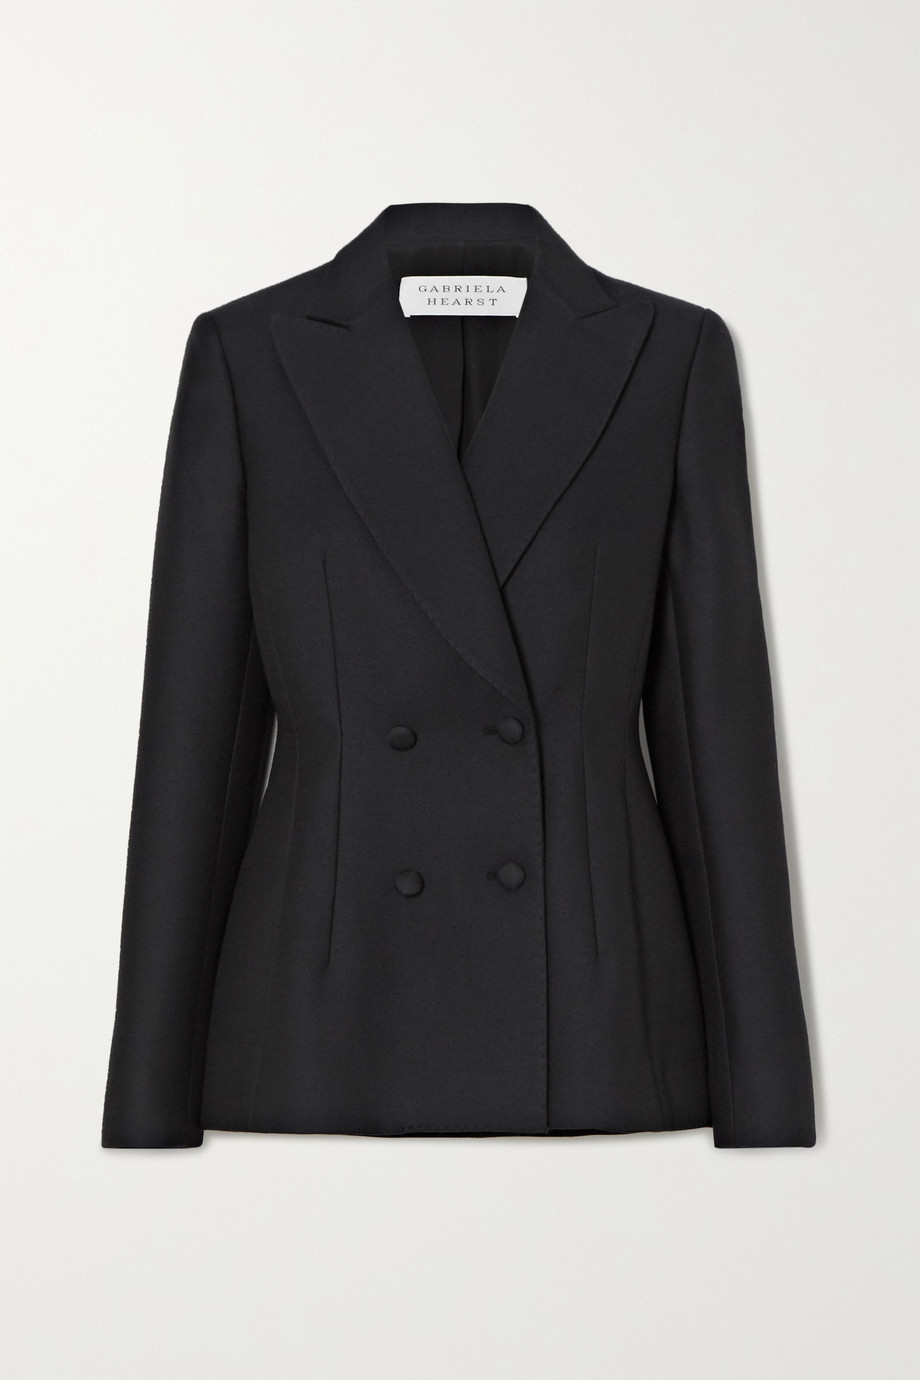 Gabriela Hearst Rezi double-breasted wool-cady blazer